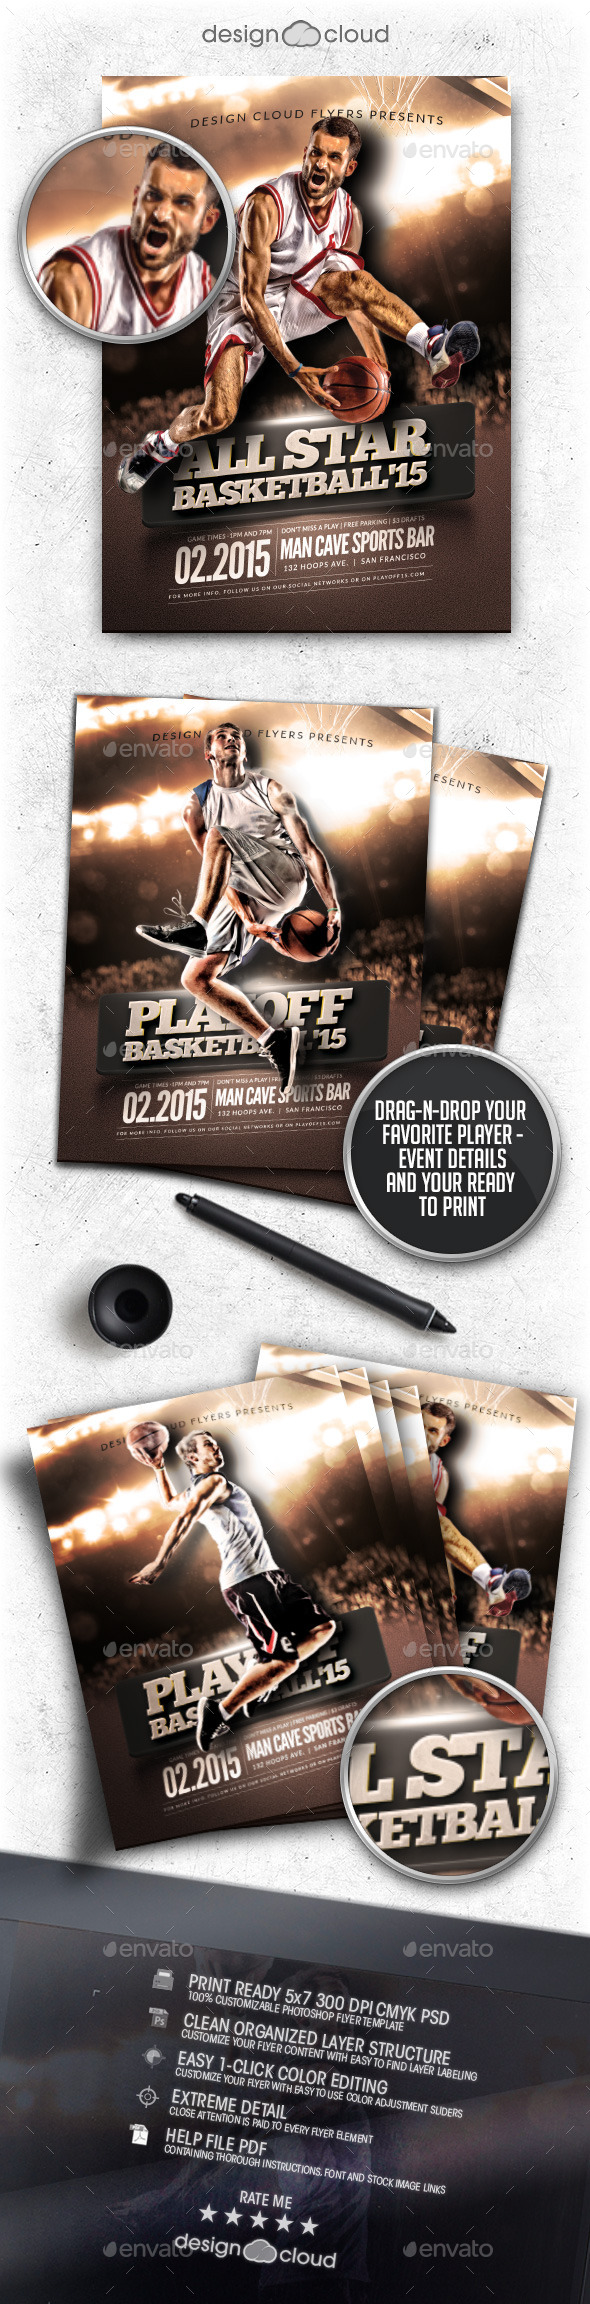 All Star Playoff Basketball Flyer Template - Sports Events